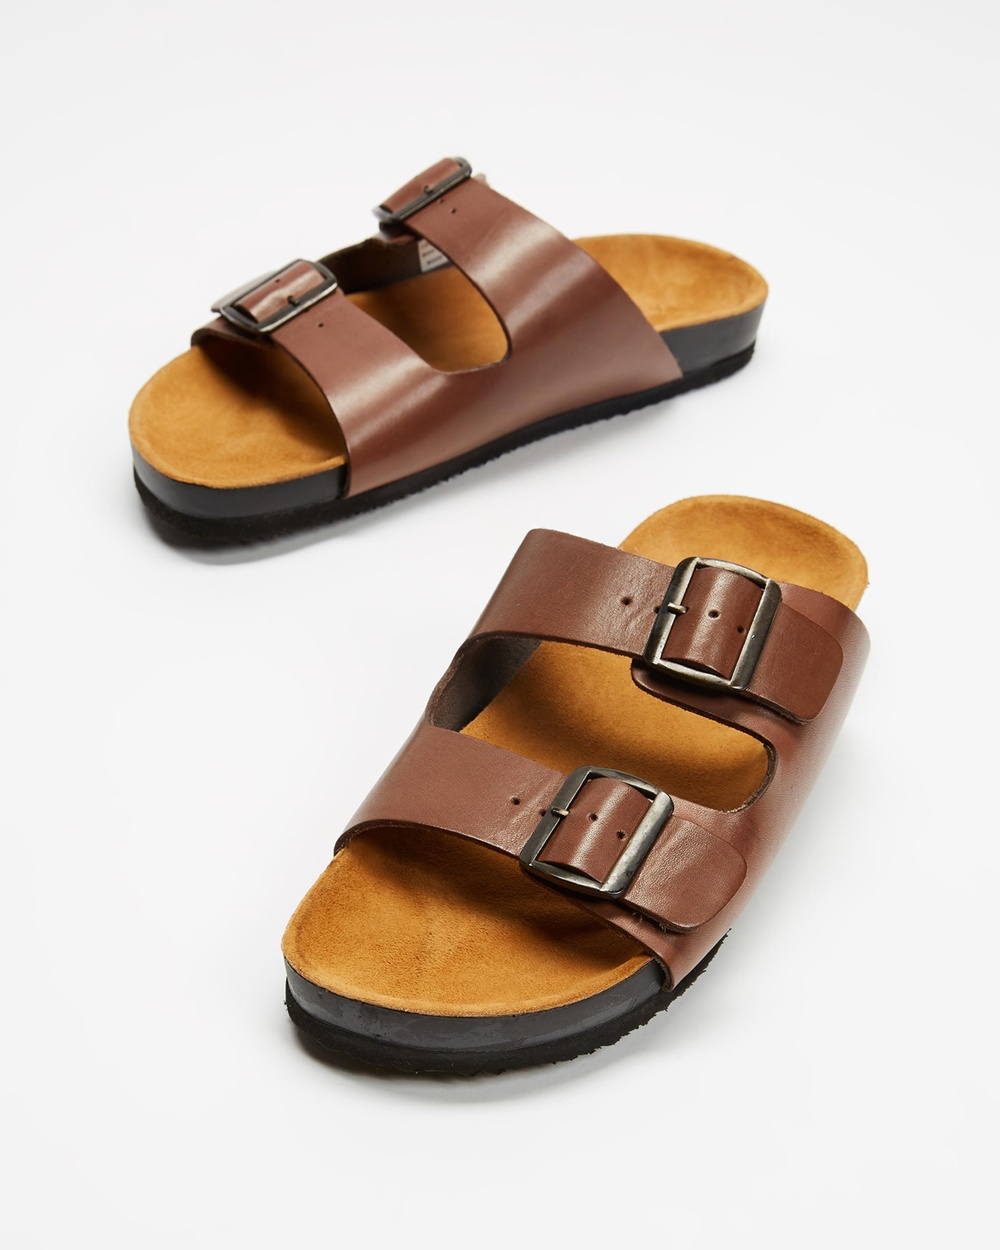 AERE Two Strap Buckle Leather Sandals Casual Shoes Brown